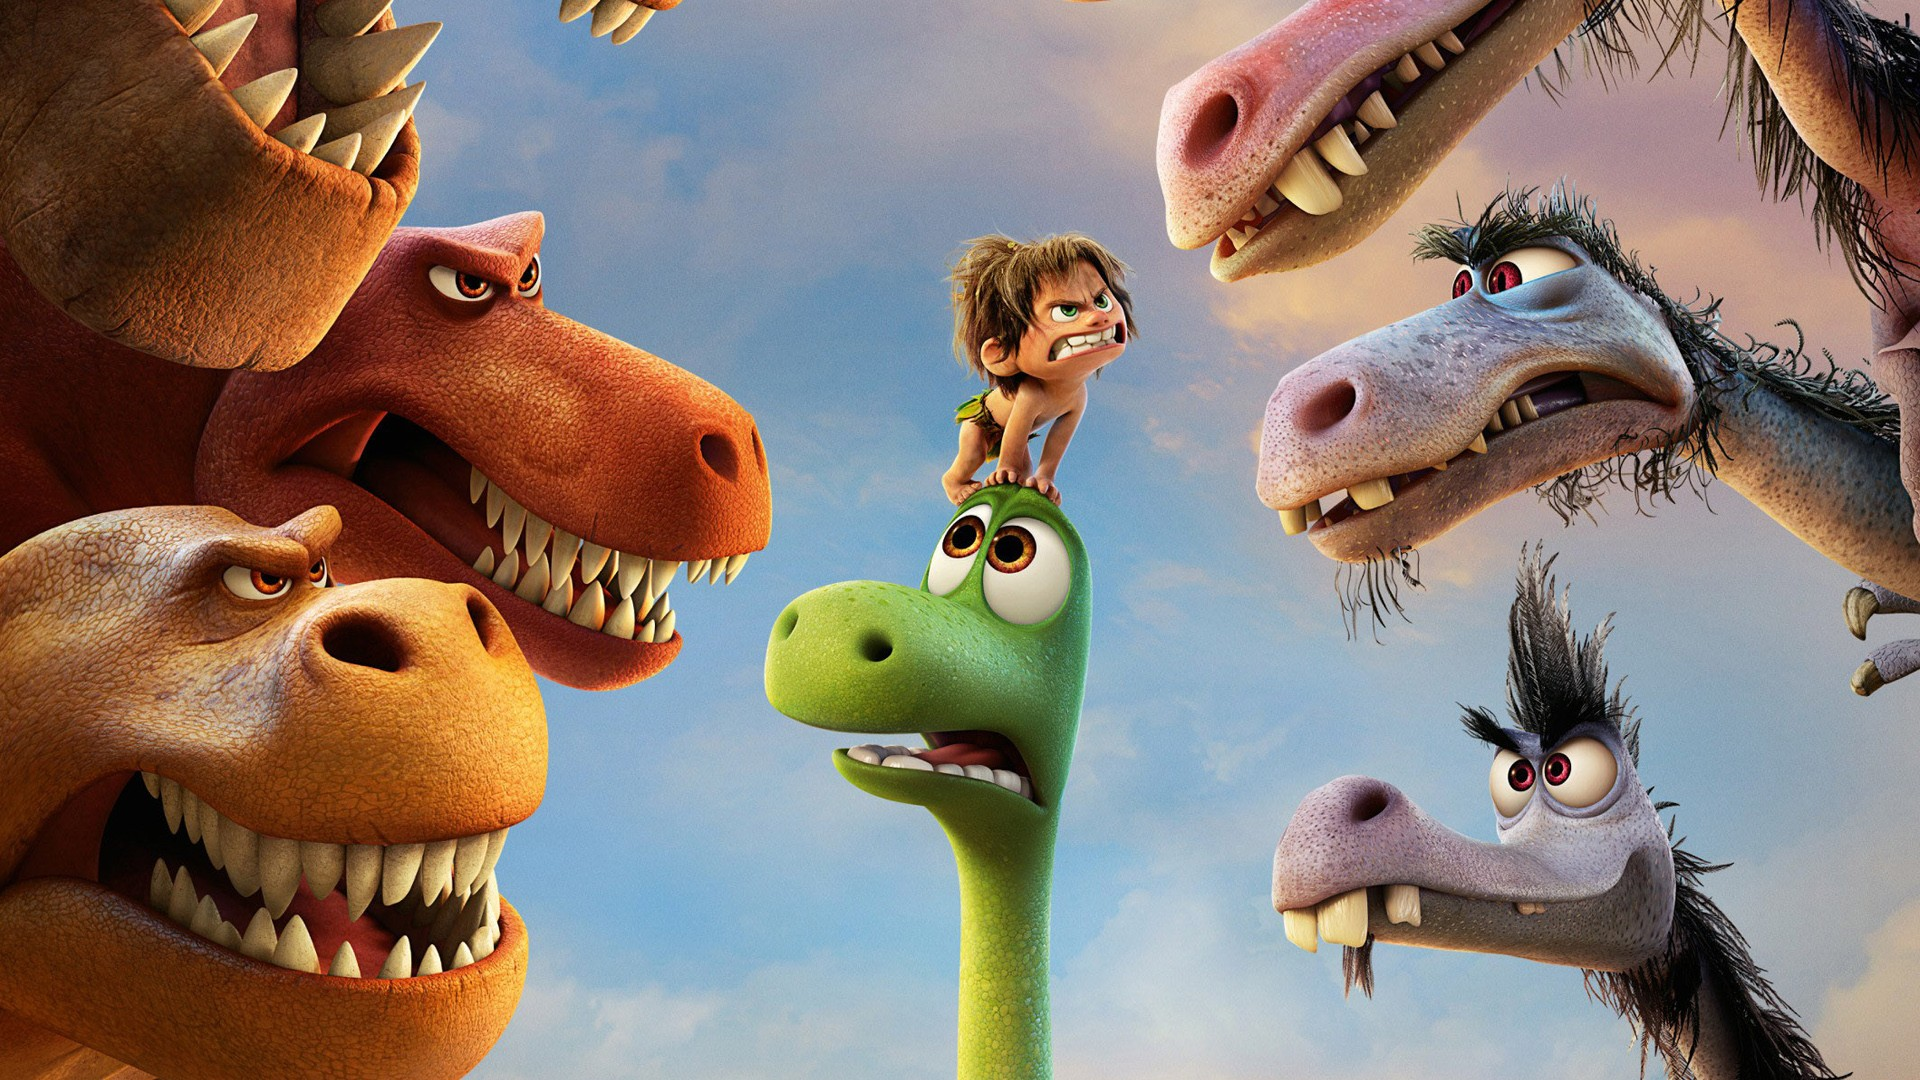 Wallpaper Dino Cute The Good Dinosaur 2015 Movie Wallpapers Hd Wallpapers